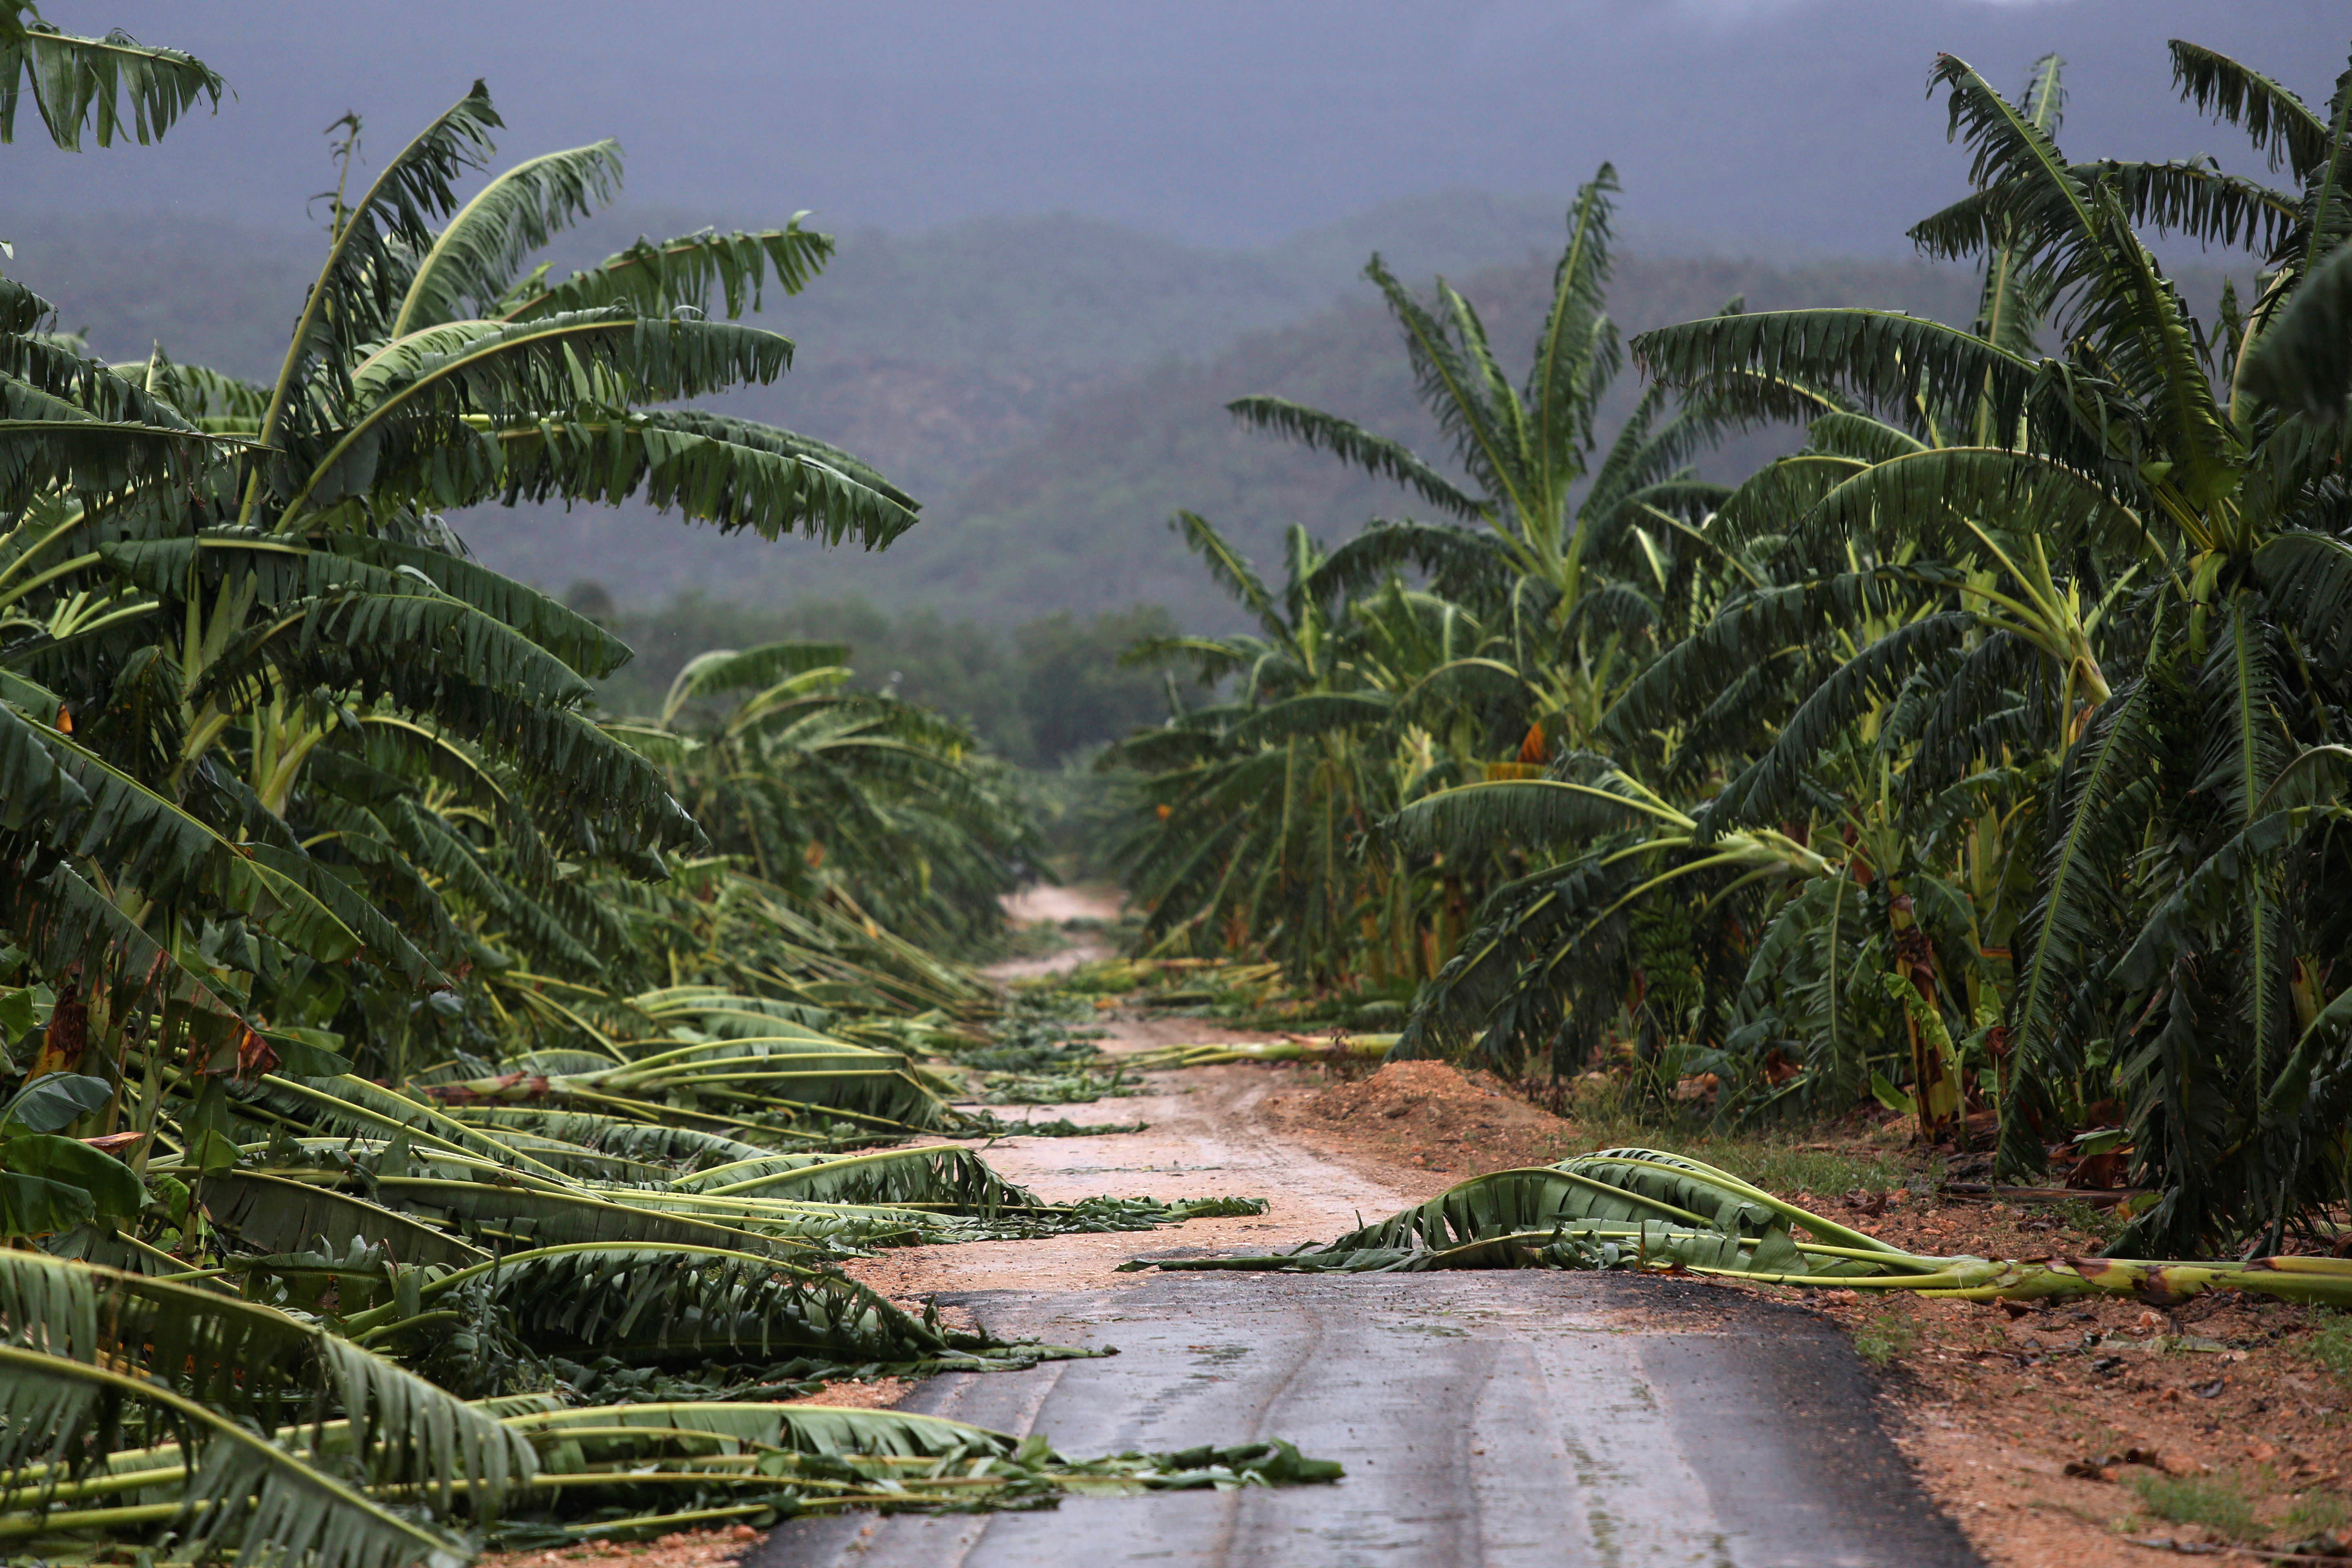 A view of partially destroyed banana trees at a road side after the passage of hurricane Matthew on the coast of Guantanamo province, Cuba on Oct. 5, 2016.